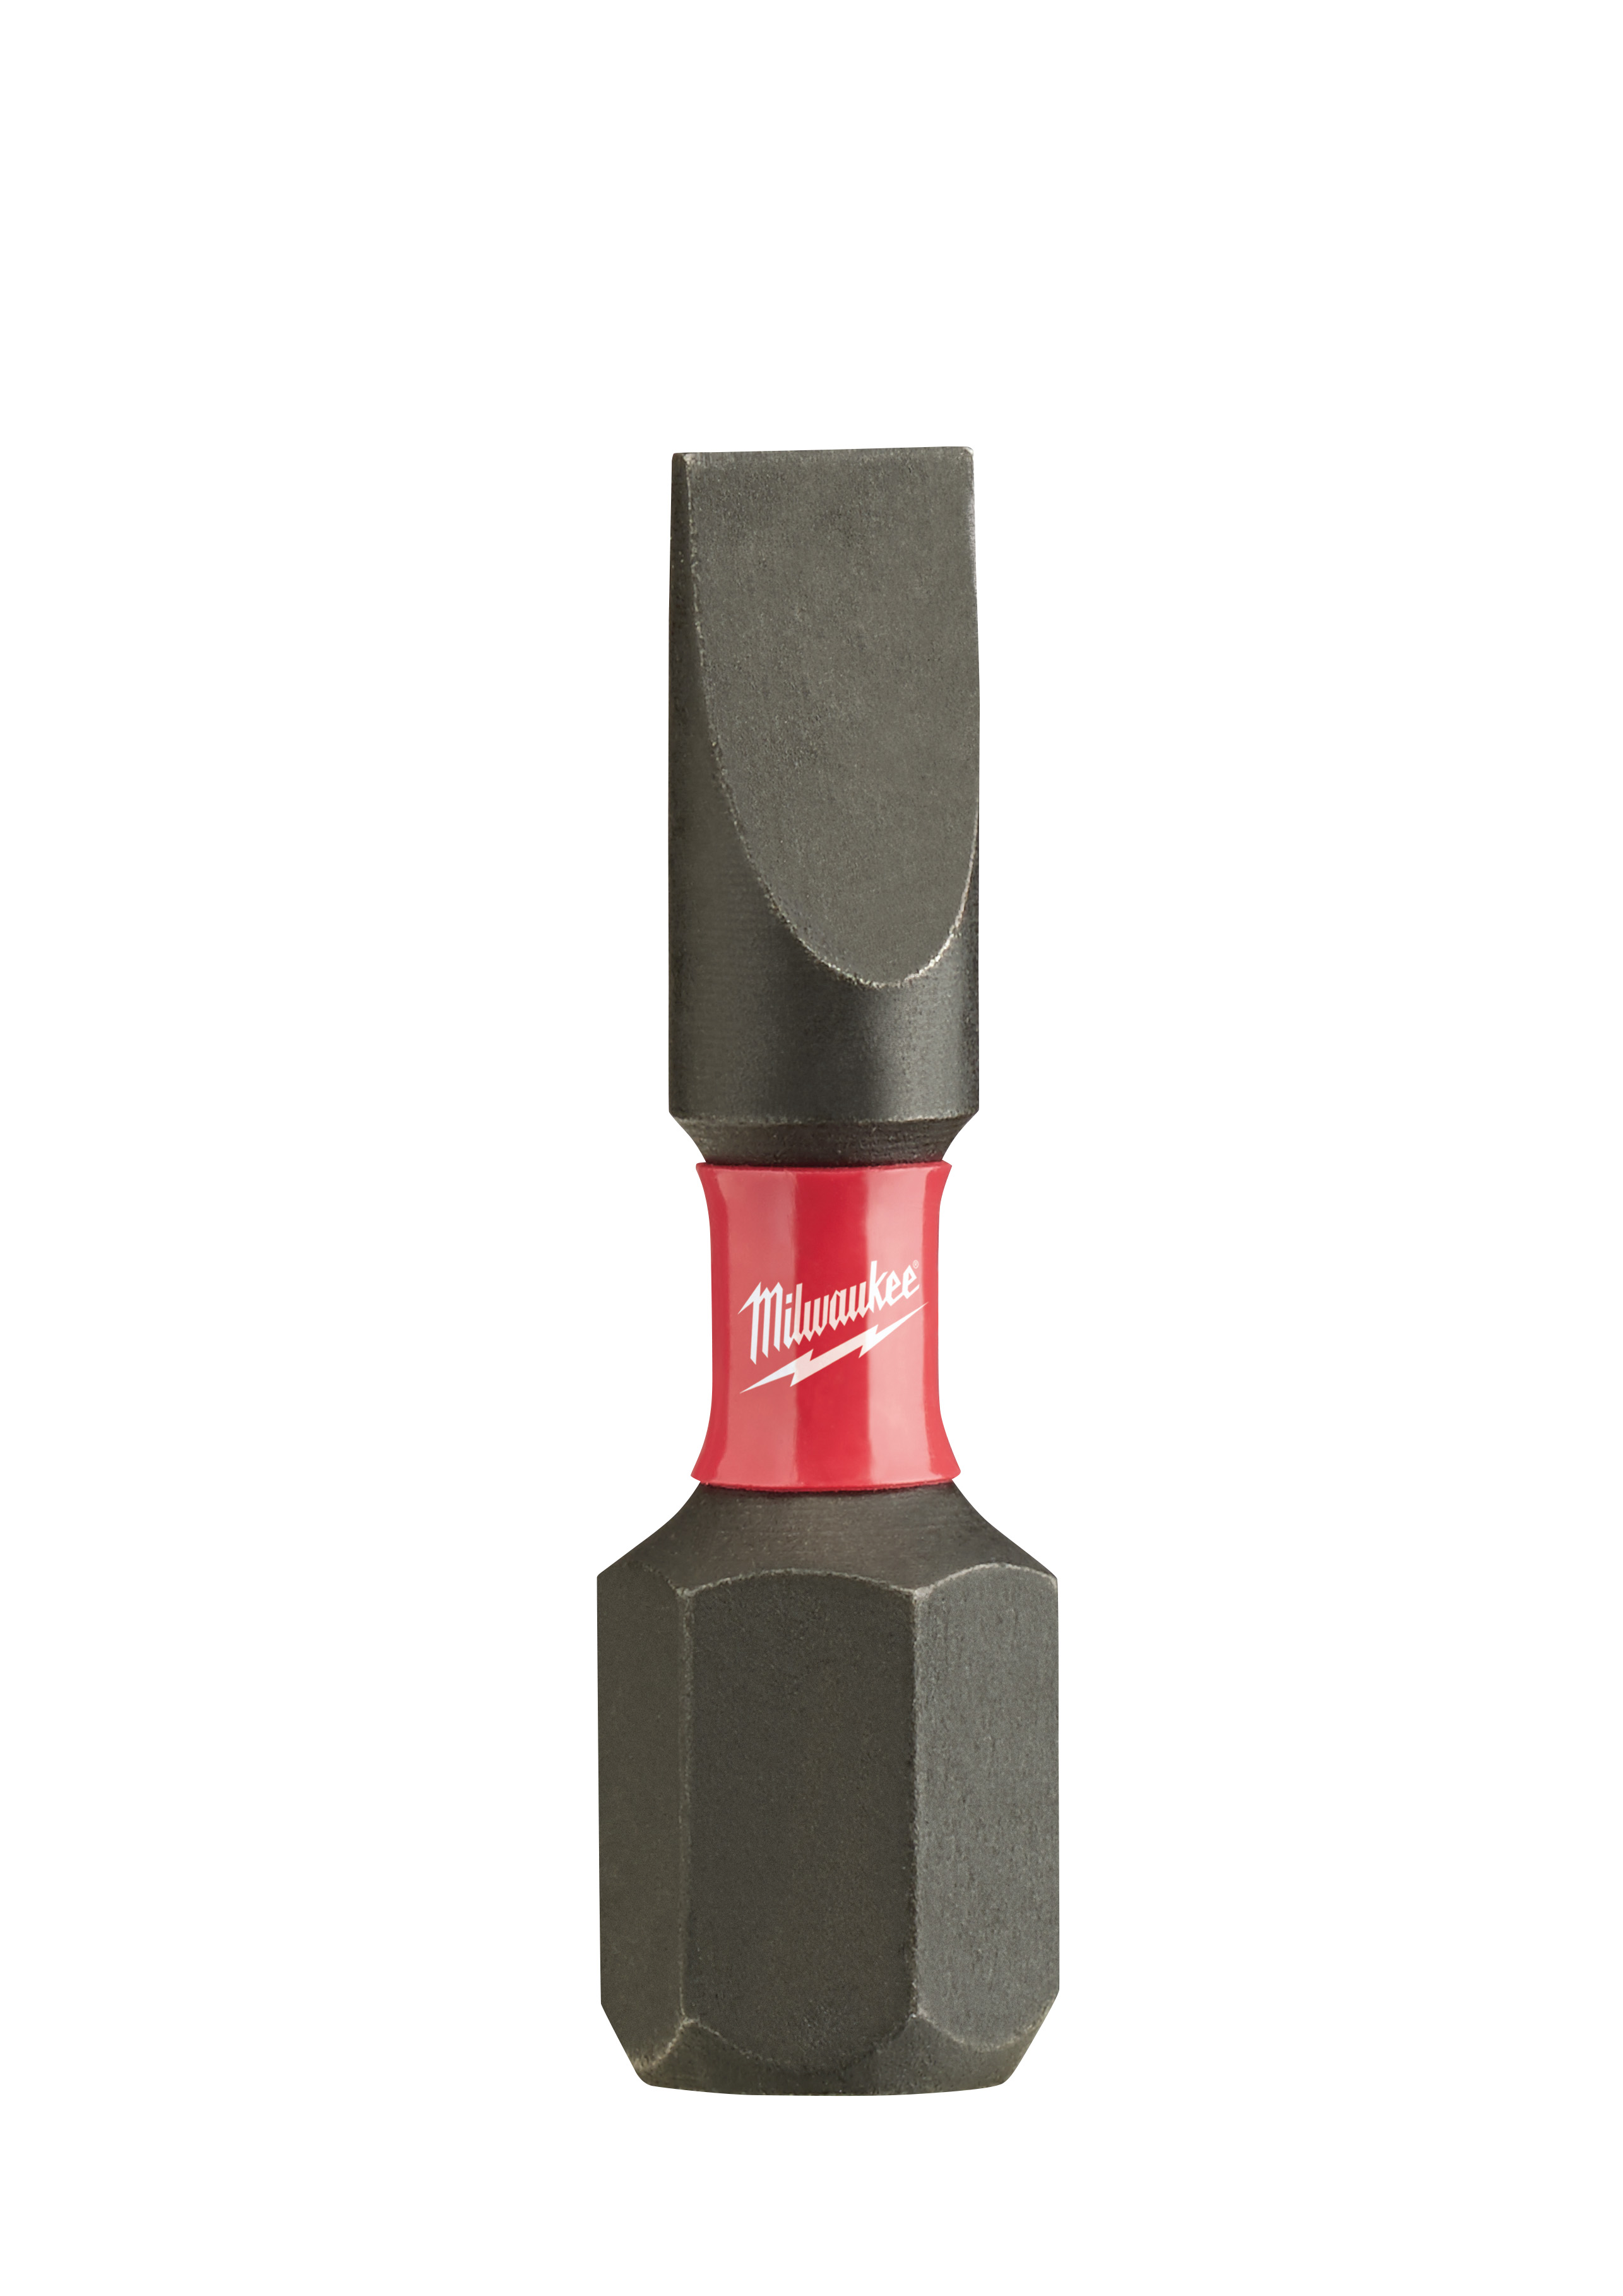 Milwaukee® SHOCKWAVE™ 48-32-4116 Impact Driver Bit, 1/8 in Slotted Point, 1 in OAL, 1/4 in, Custom Alloy76™ Steel